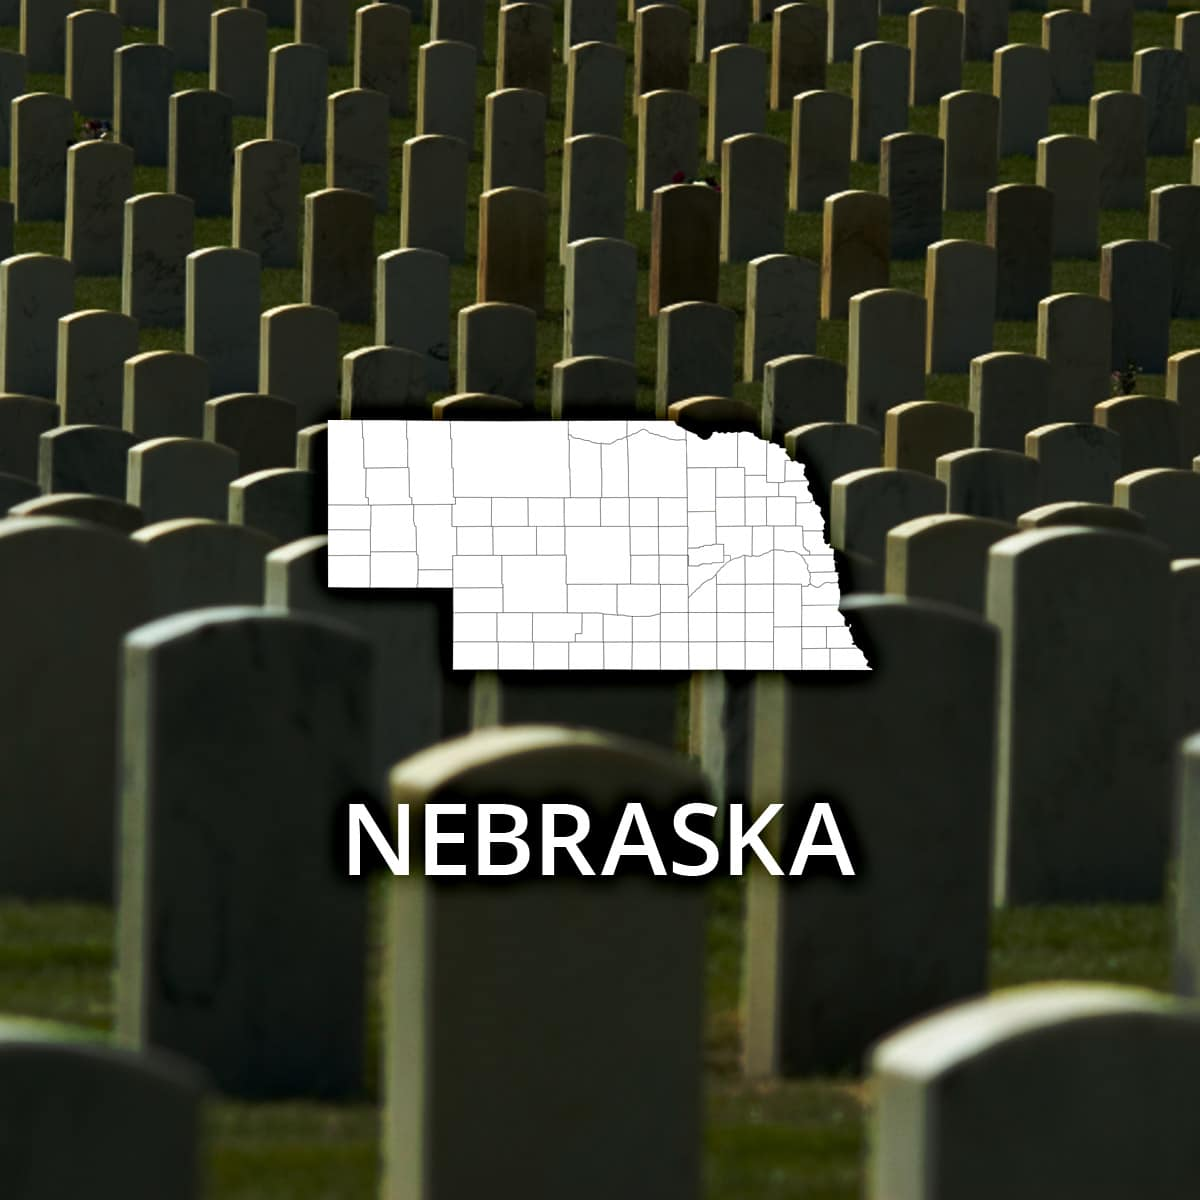 Where to Obtain a Nebraska Death Certificate